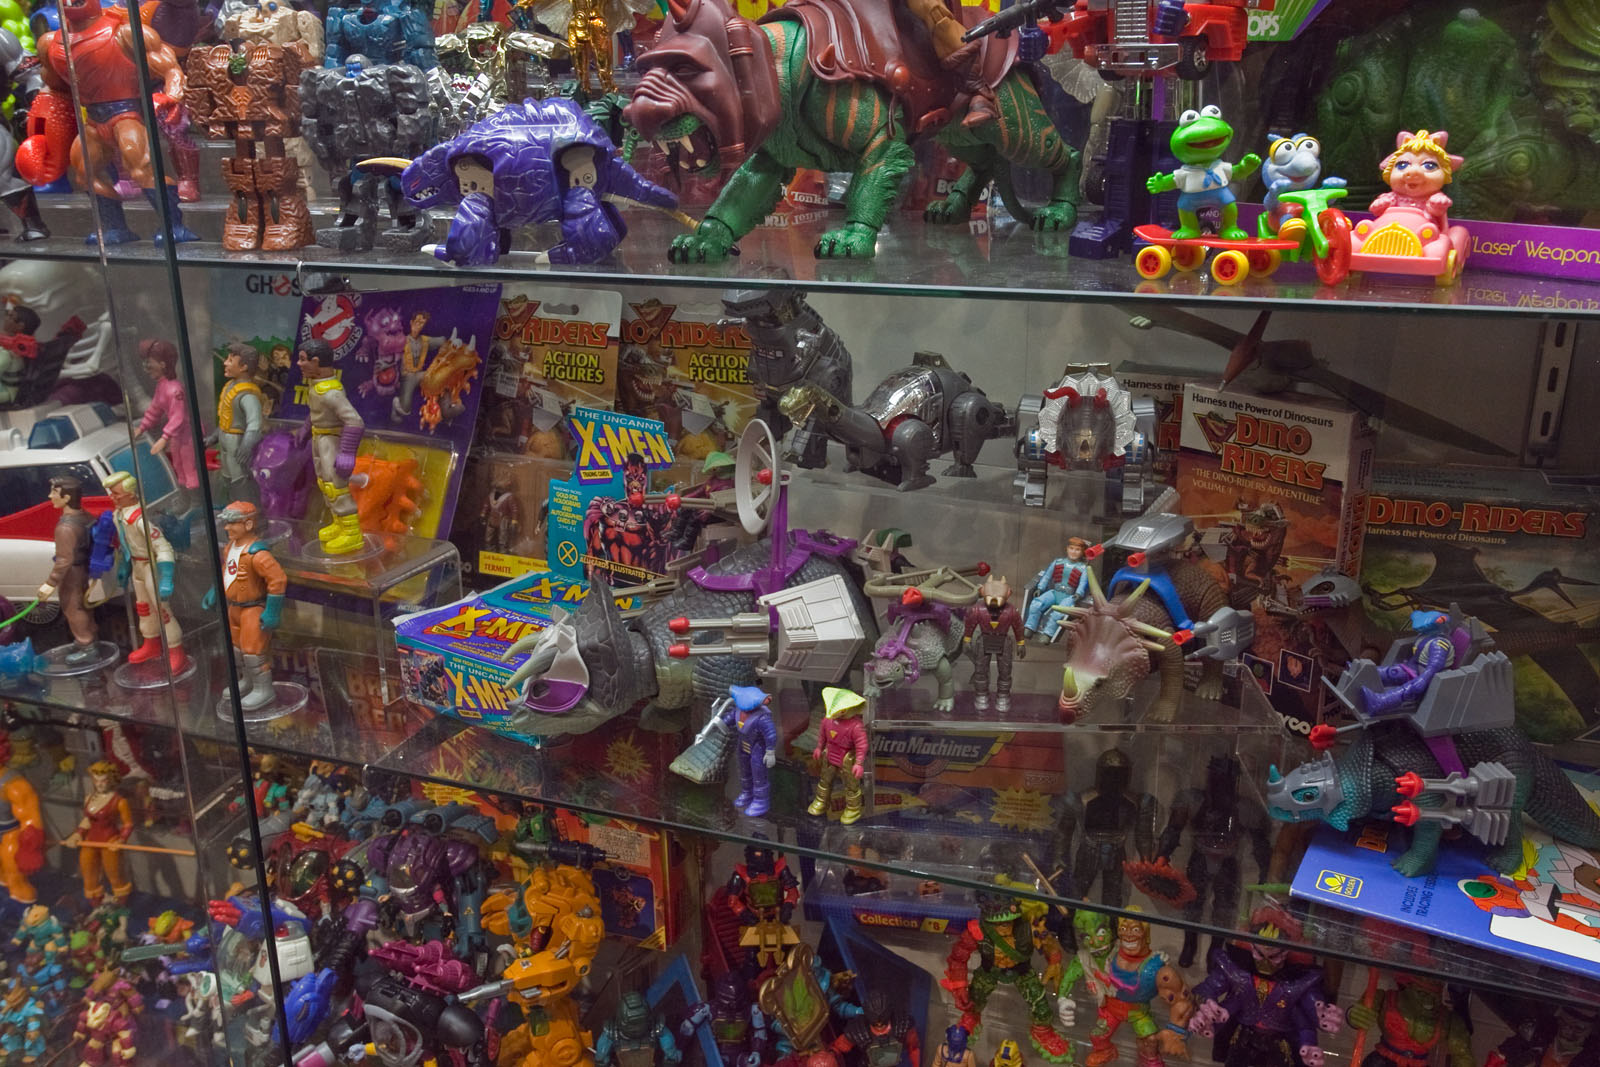 80 Toy Action Figure Shelves - chriscollection6_Beautiful 80 Toy Action Figure Shelves - chriscollection6  Pic_431425.jpg